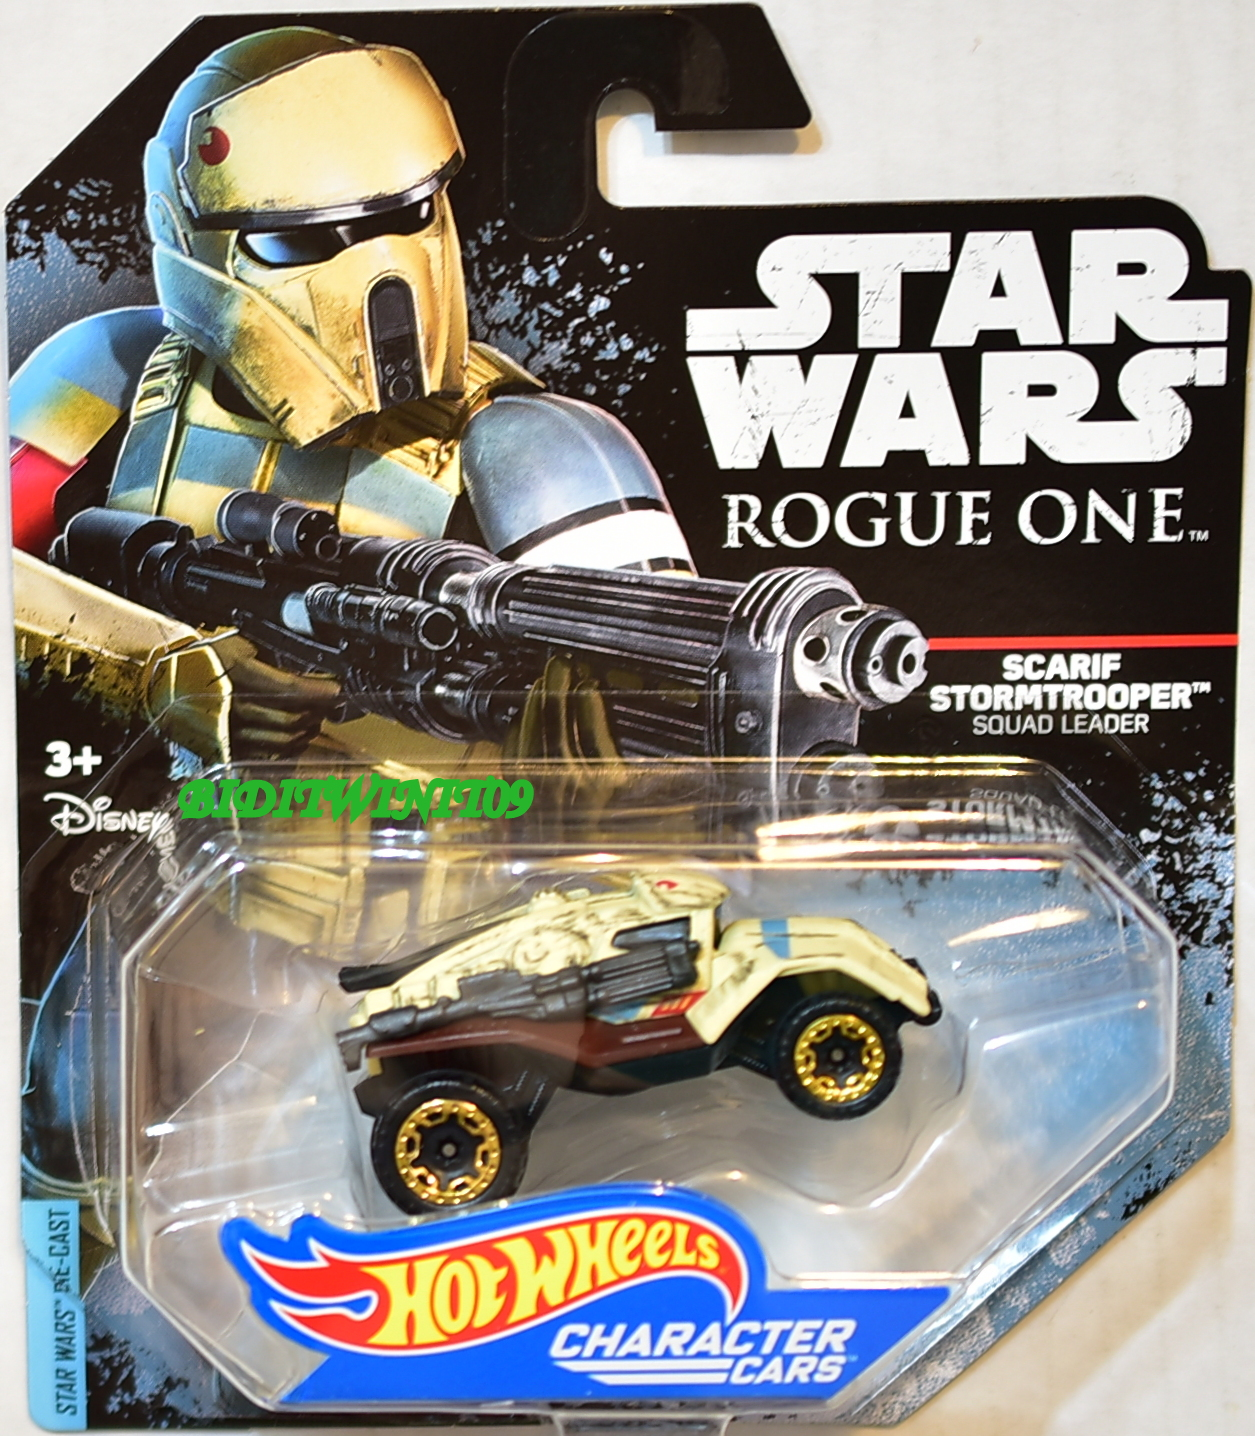 STAR WARS 2014 HOT WHEELS - ROGUE ONE SCARIF STORMTROOPER SQUAD LEADER